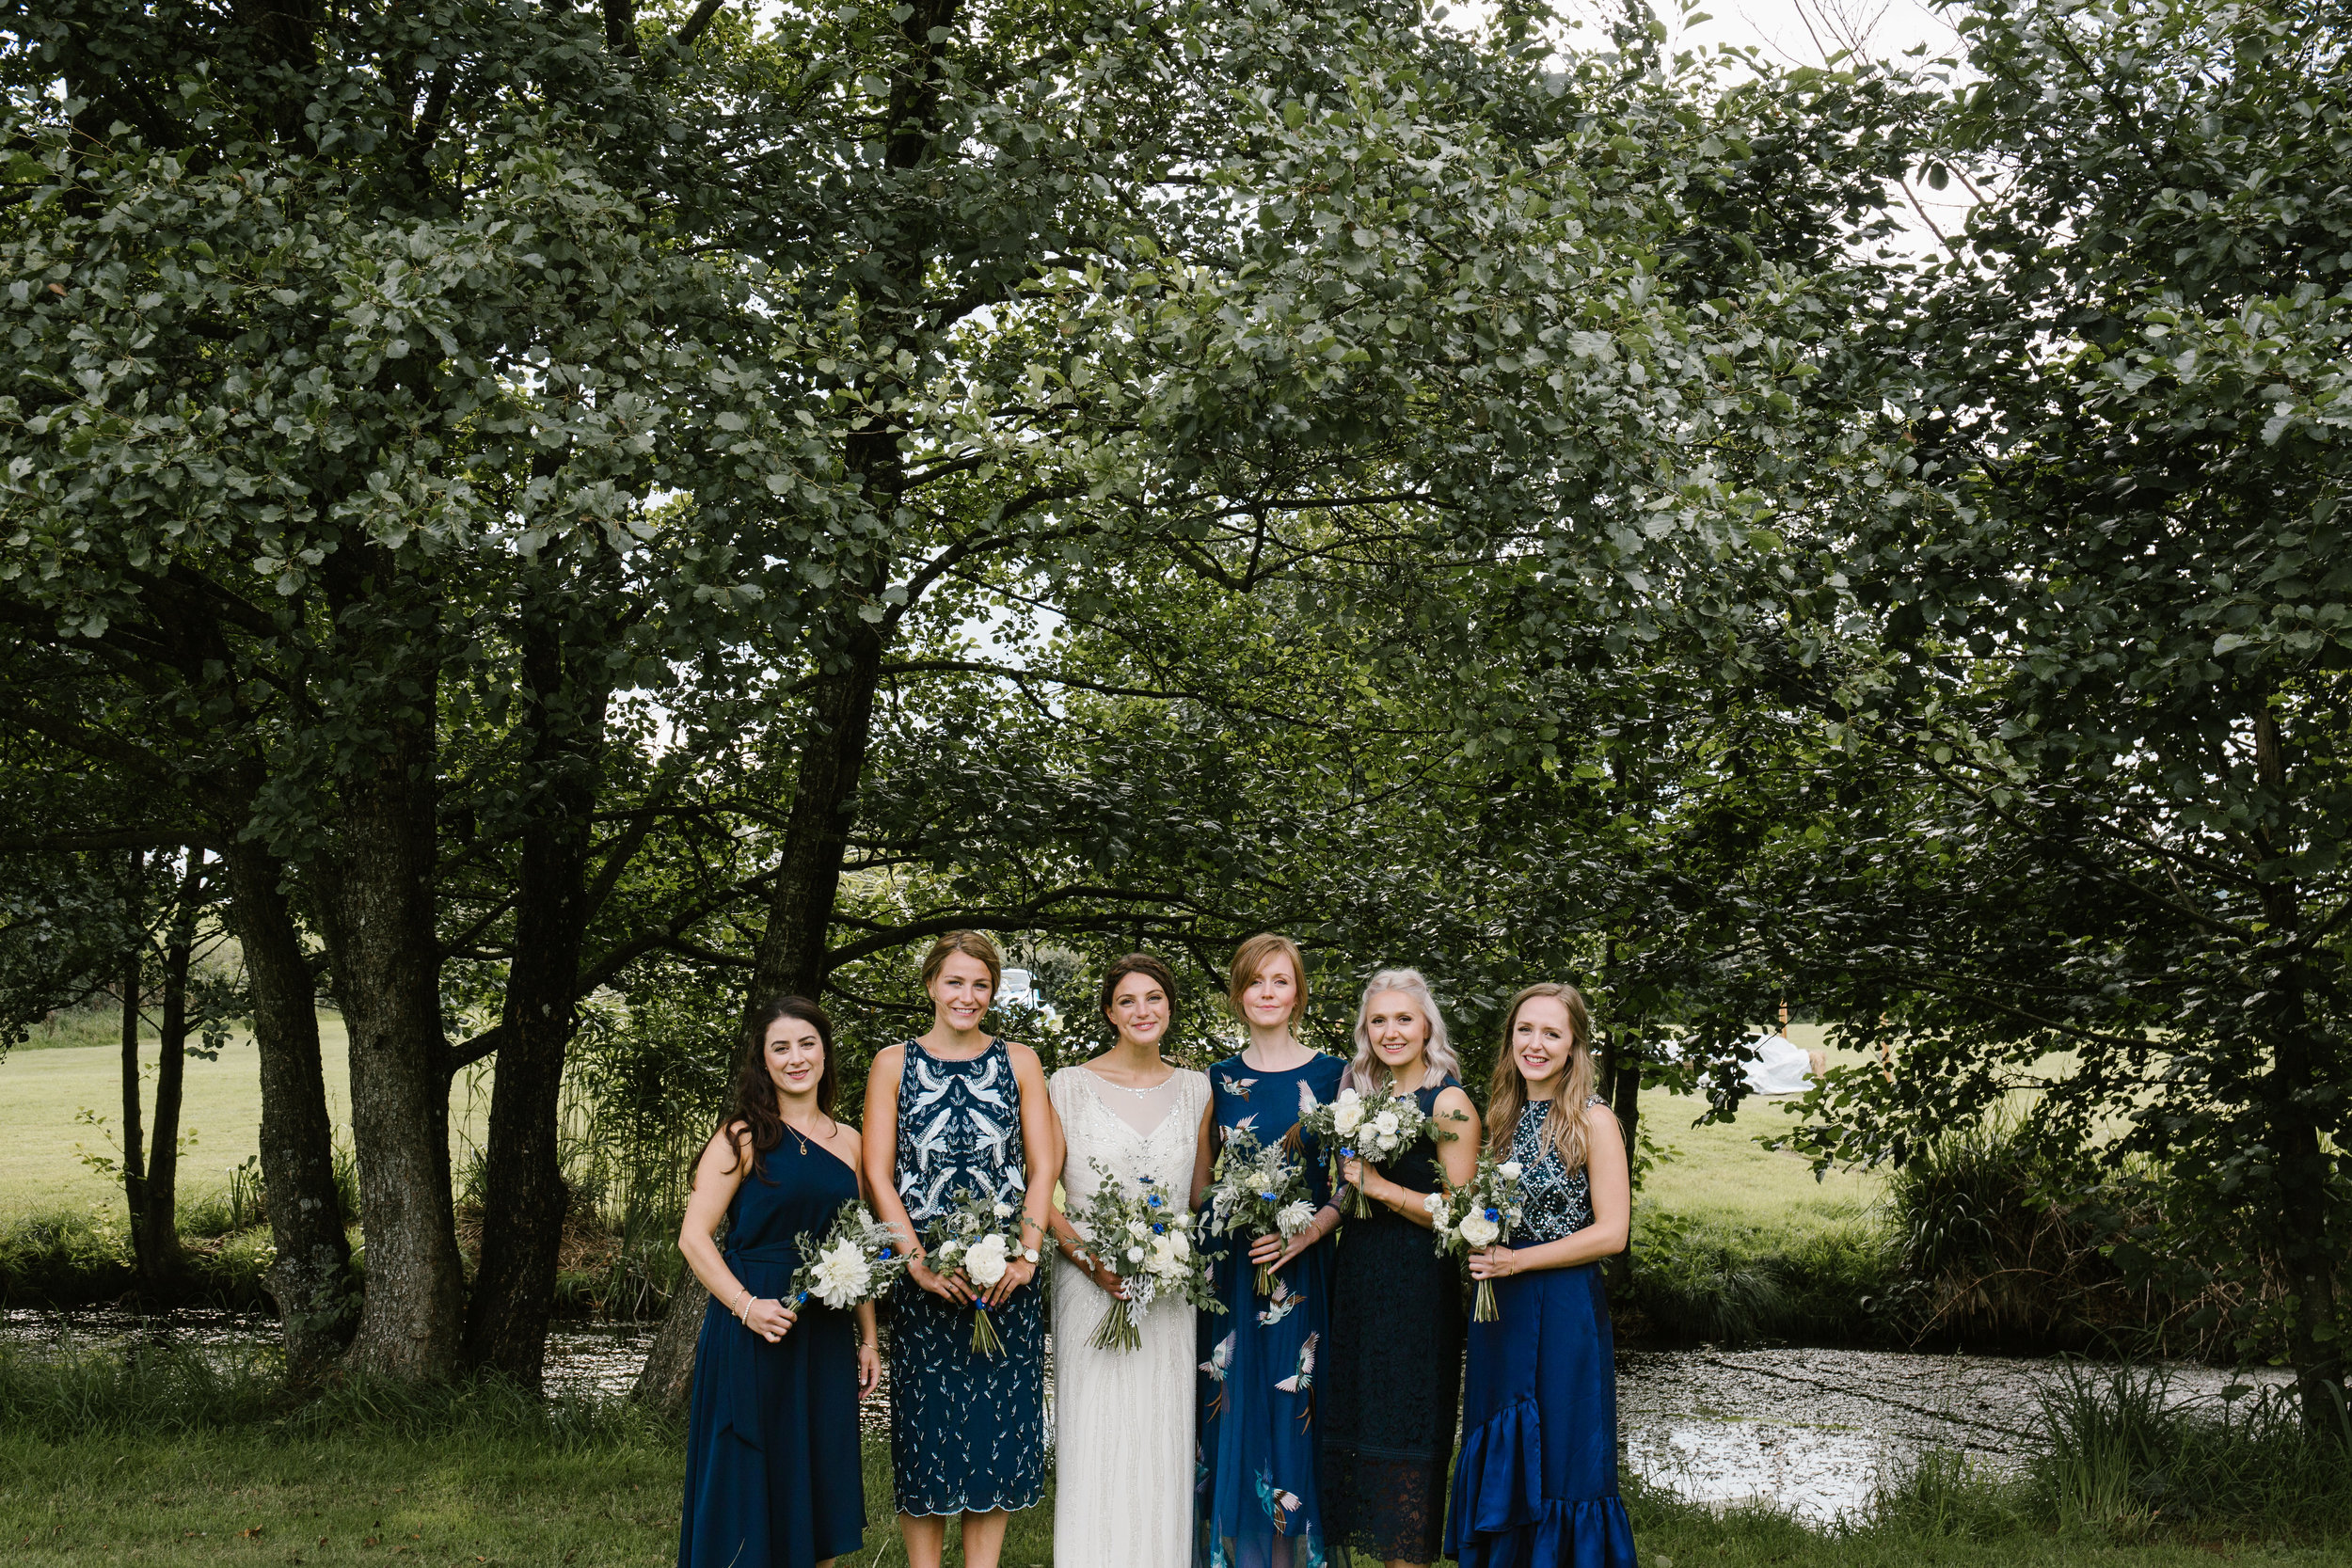 bridesmaids in different kind of dresses